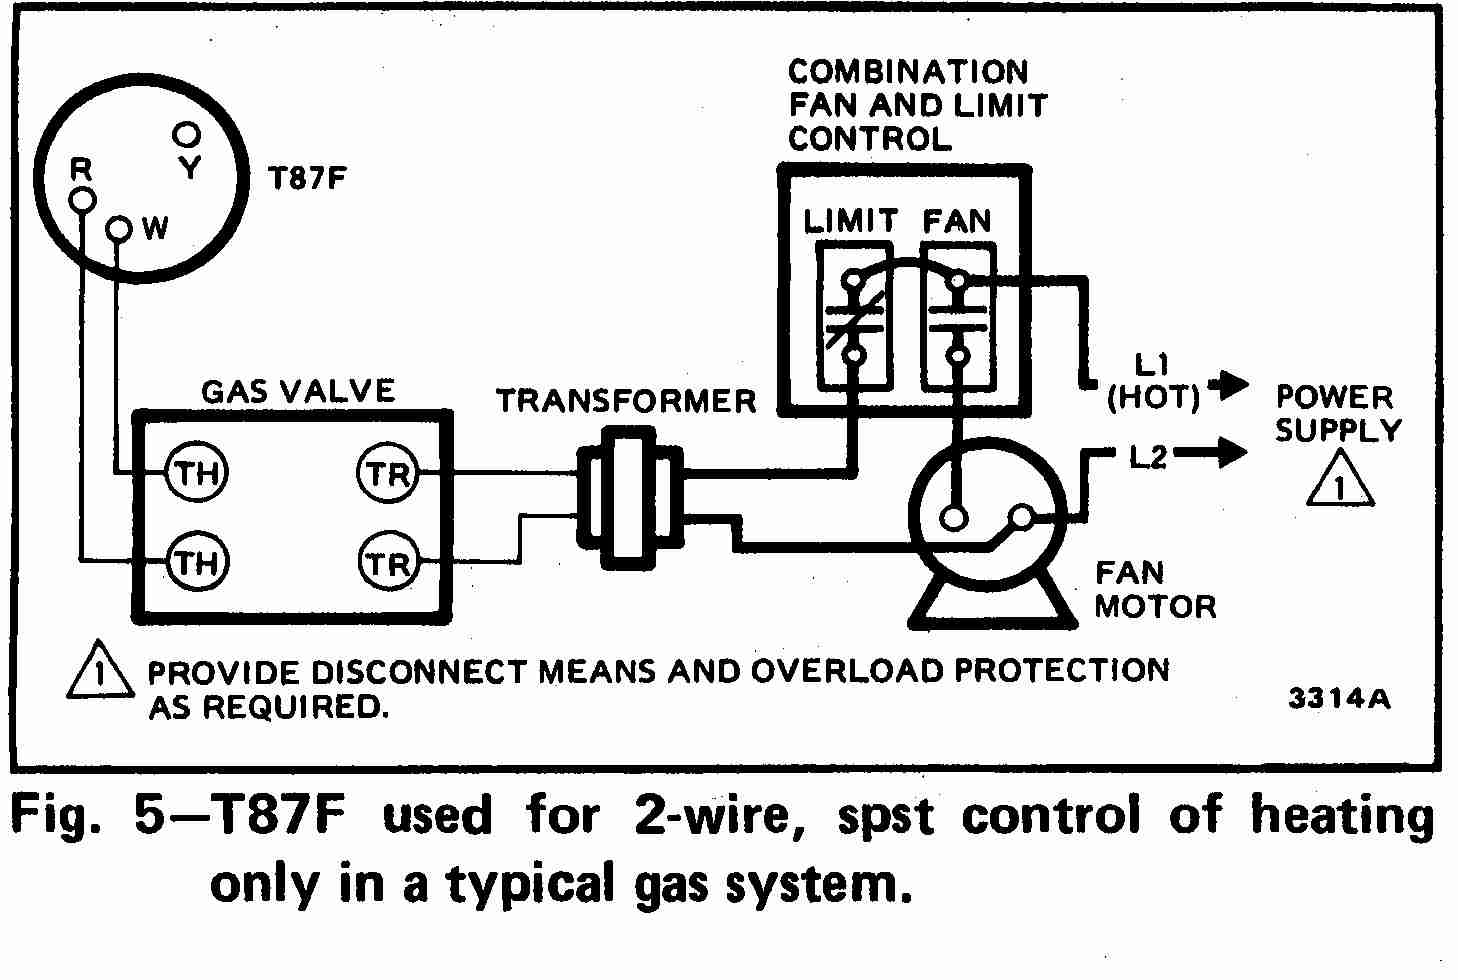 TT_T87F_0002_2Wg_DJF zone valve wiring installation & instructions guide to heating honeywell r845a relay wiring diagram at readyjetset.co